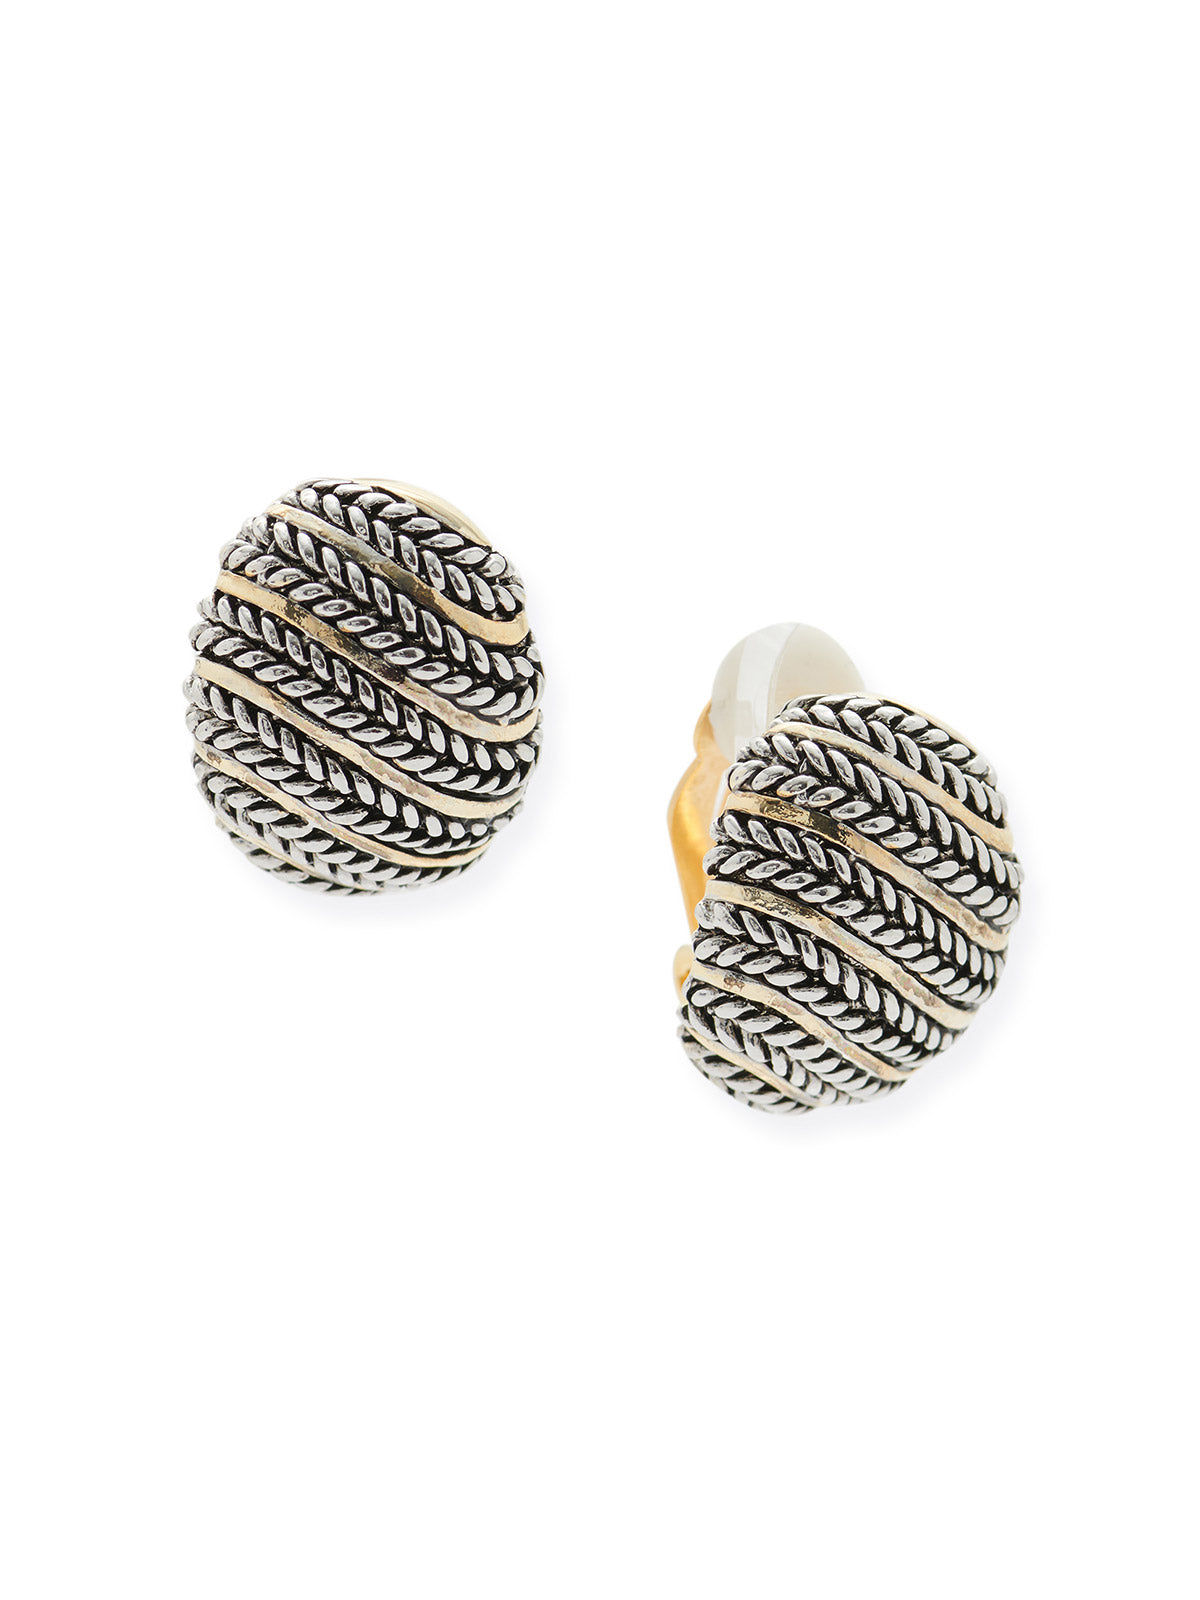 Braid and Swirl Clip Earrings